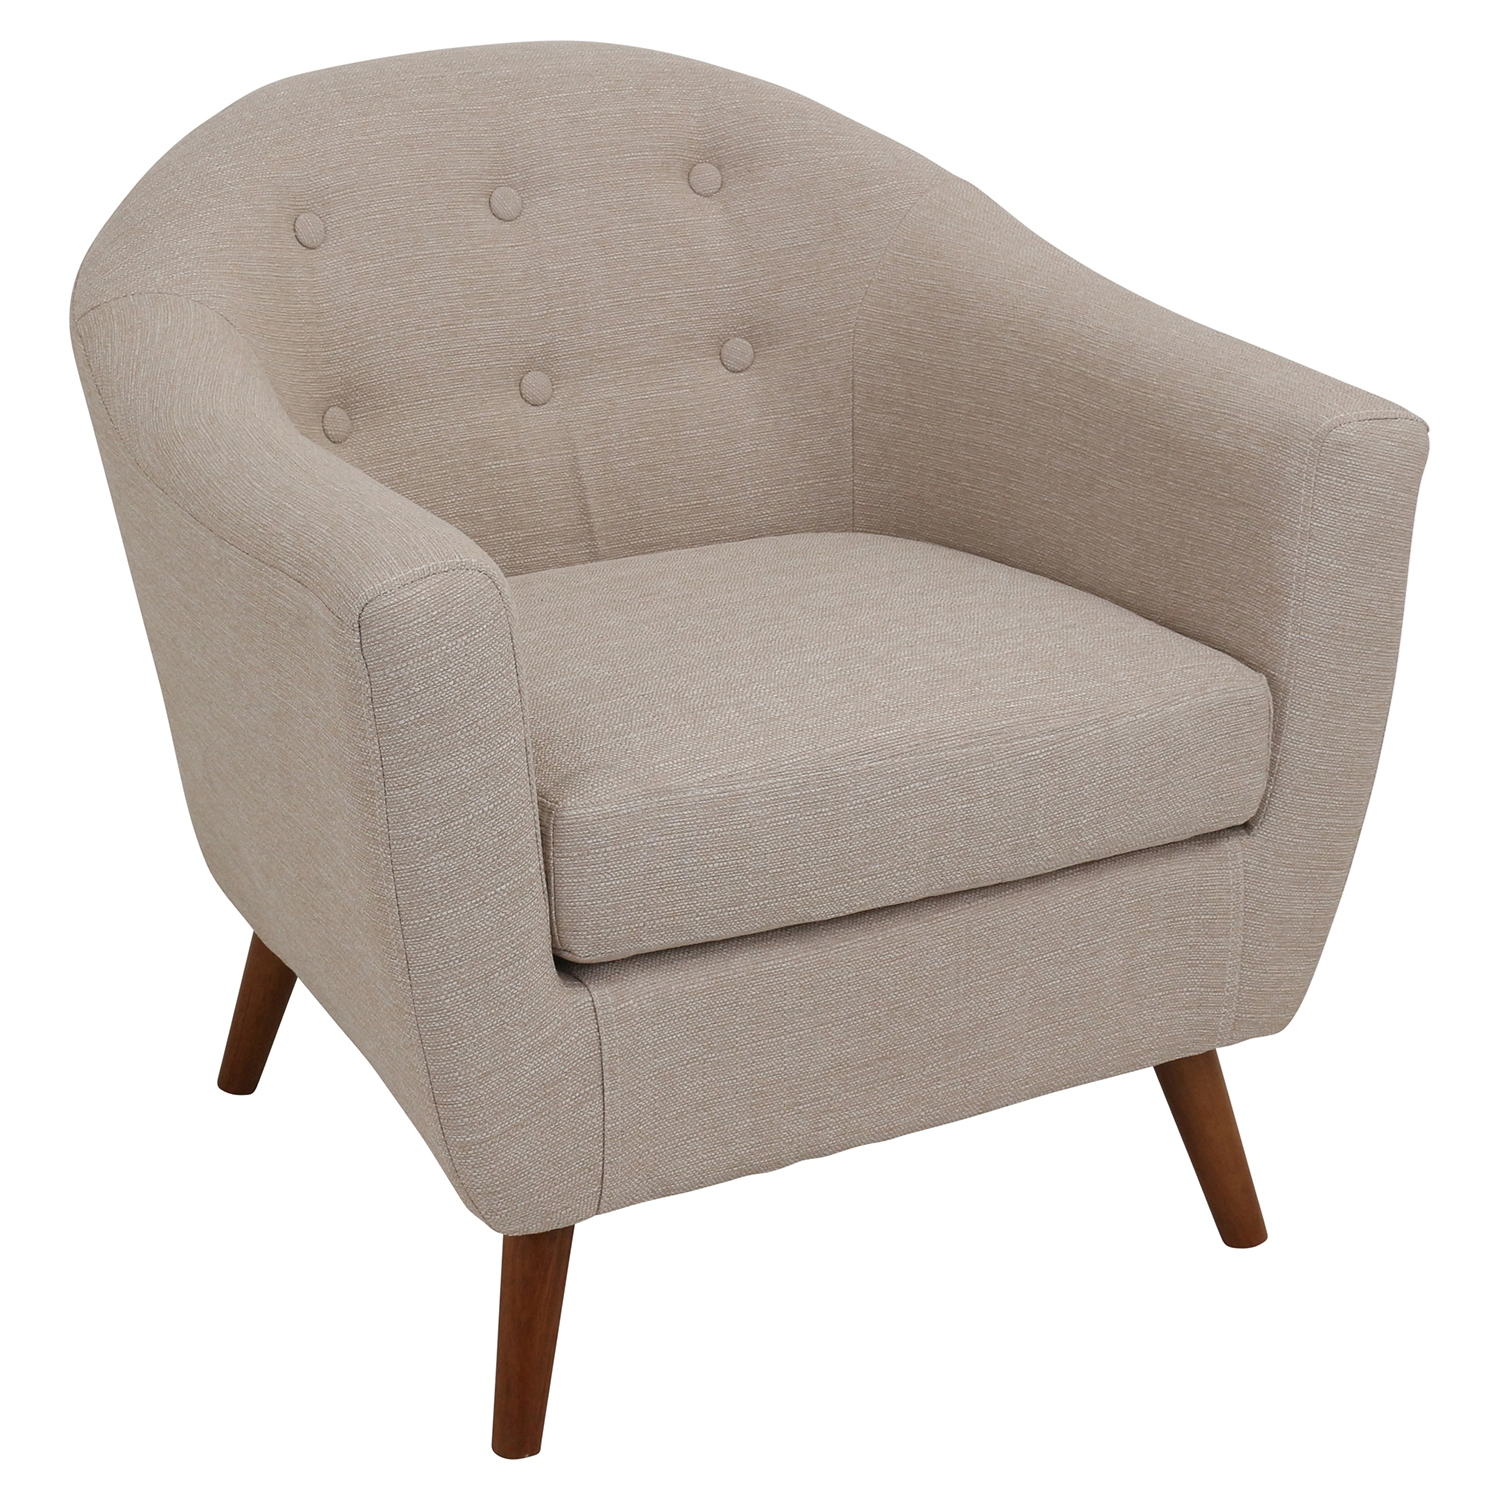 Rockwell Upholstery Armchair - Button Tufted, Beige